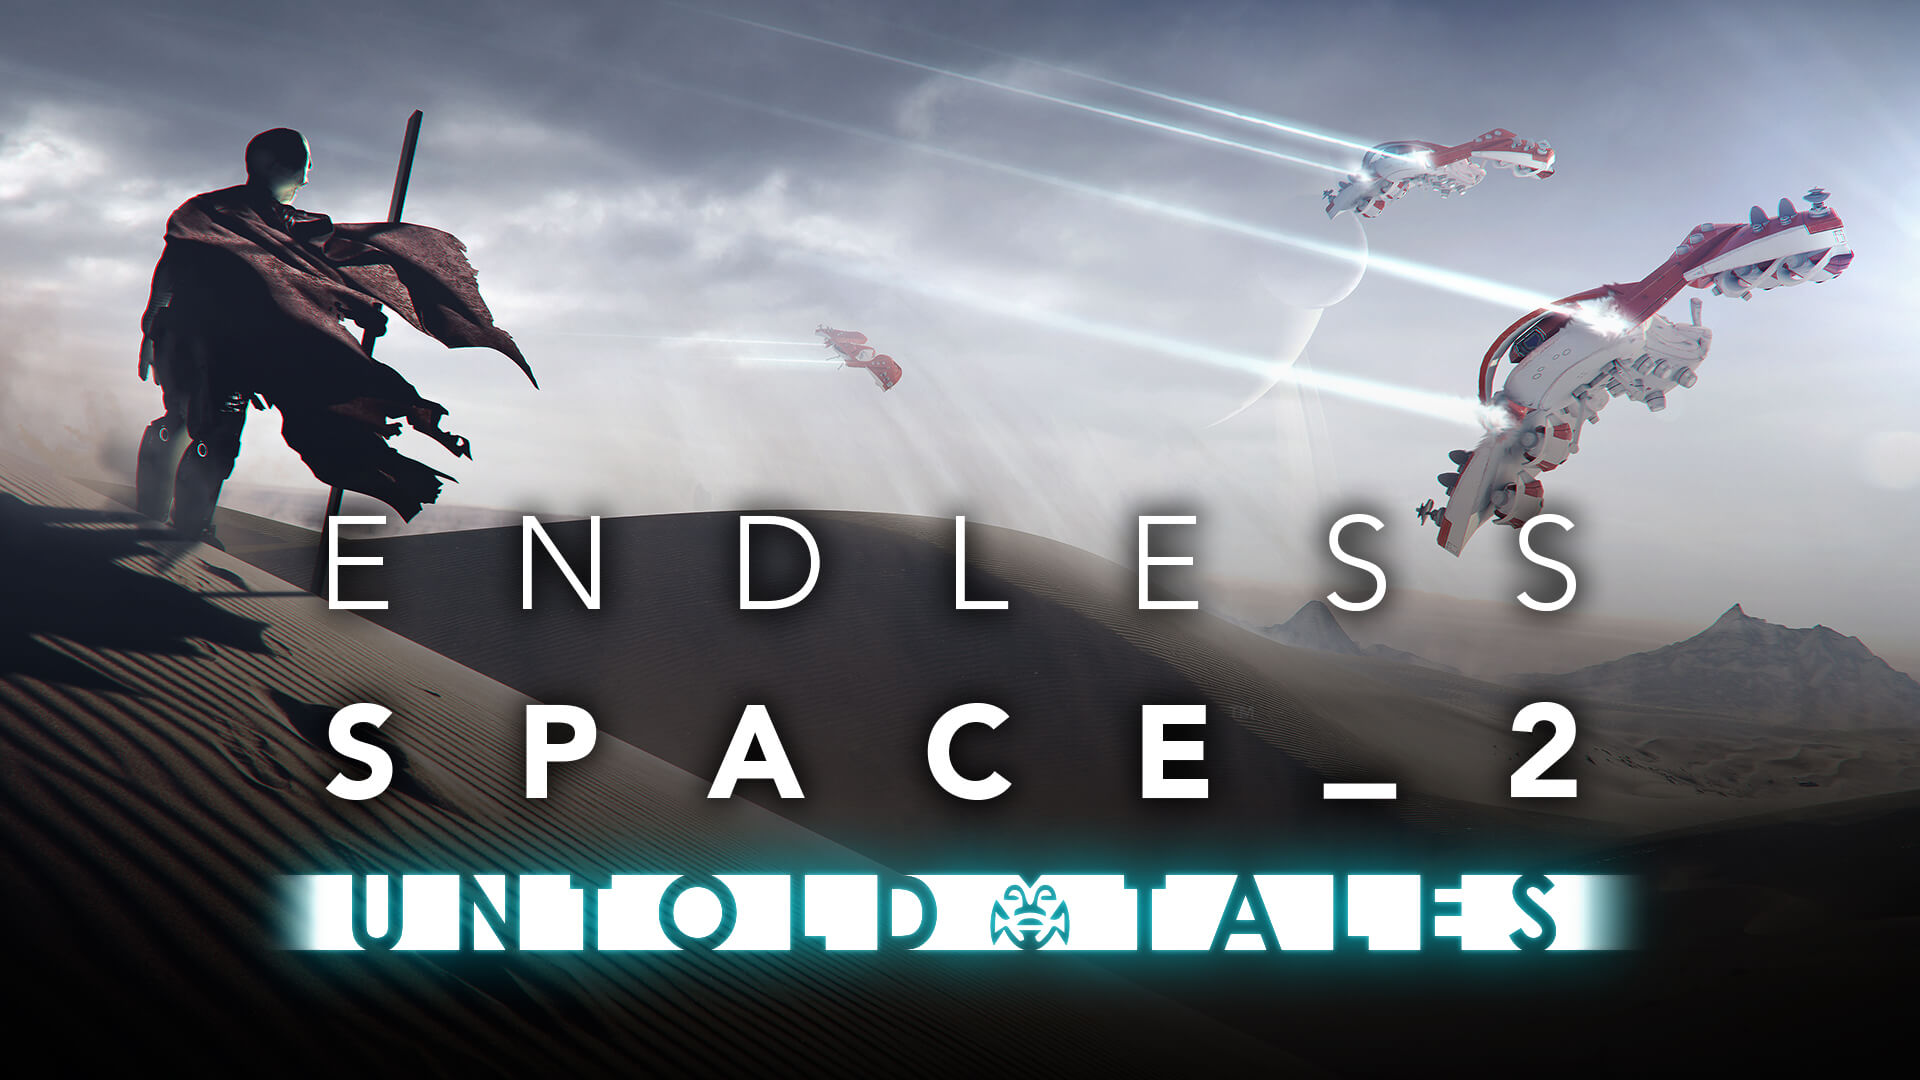 endless space 2 untold tales